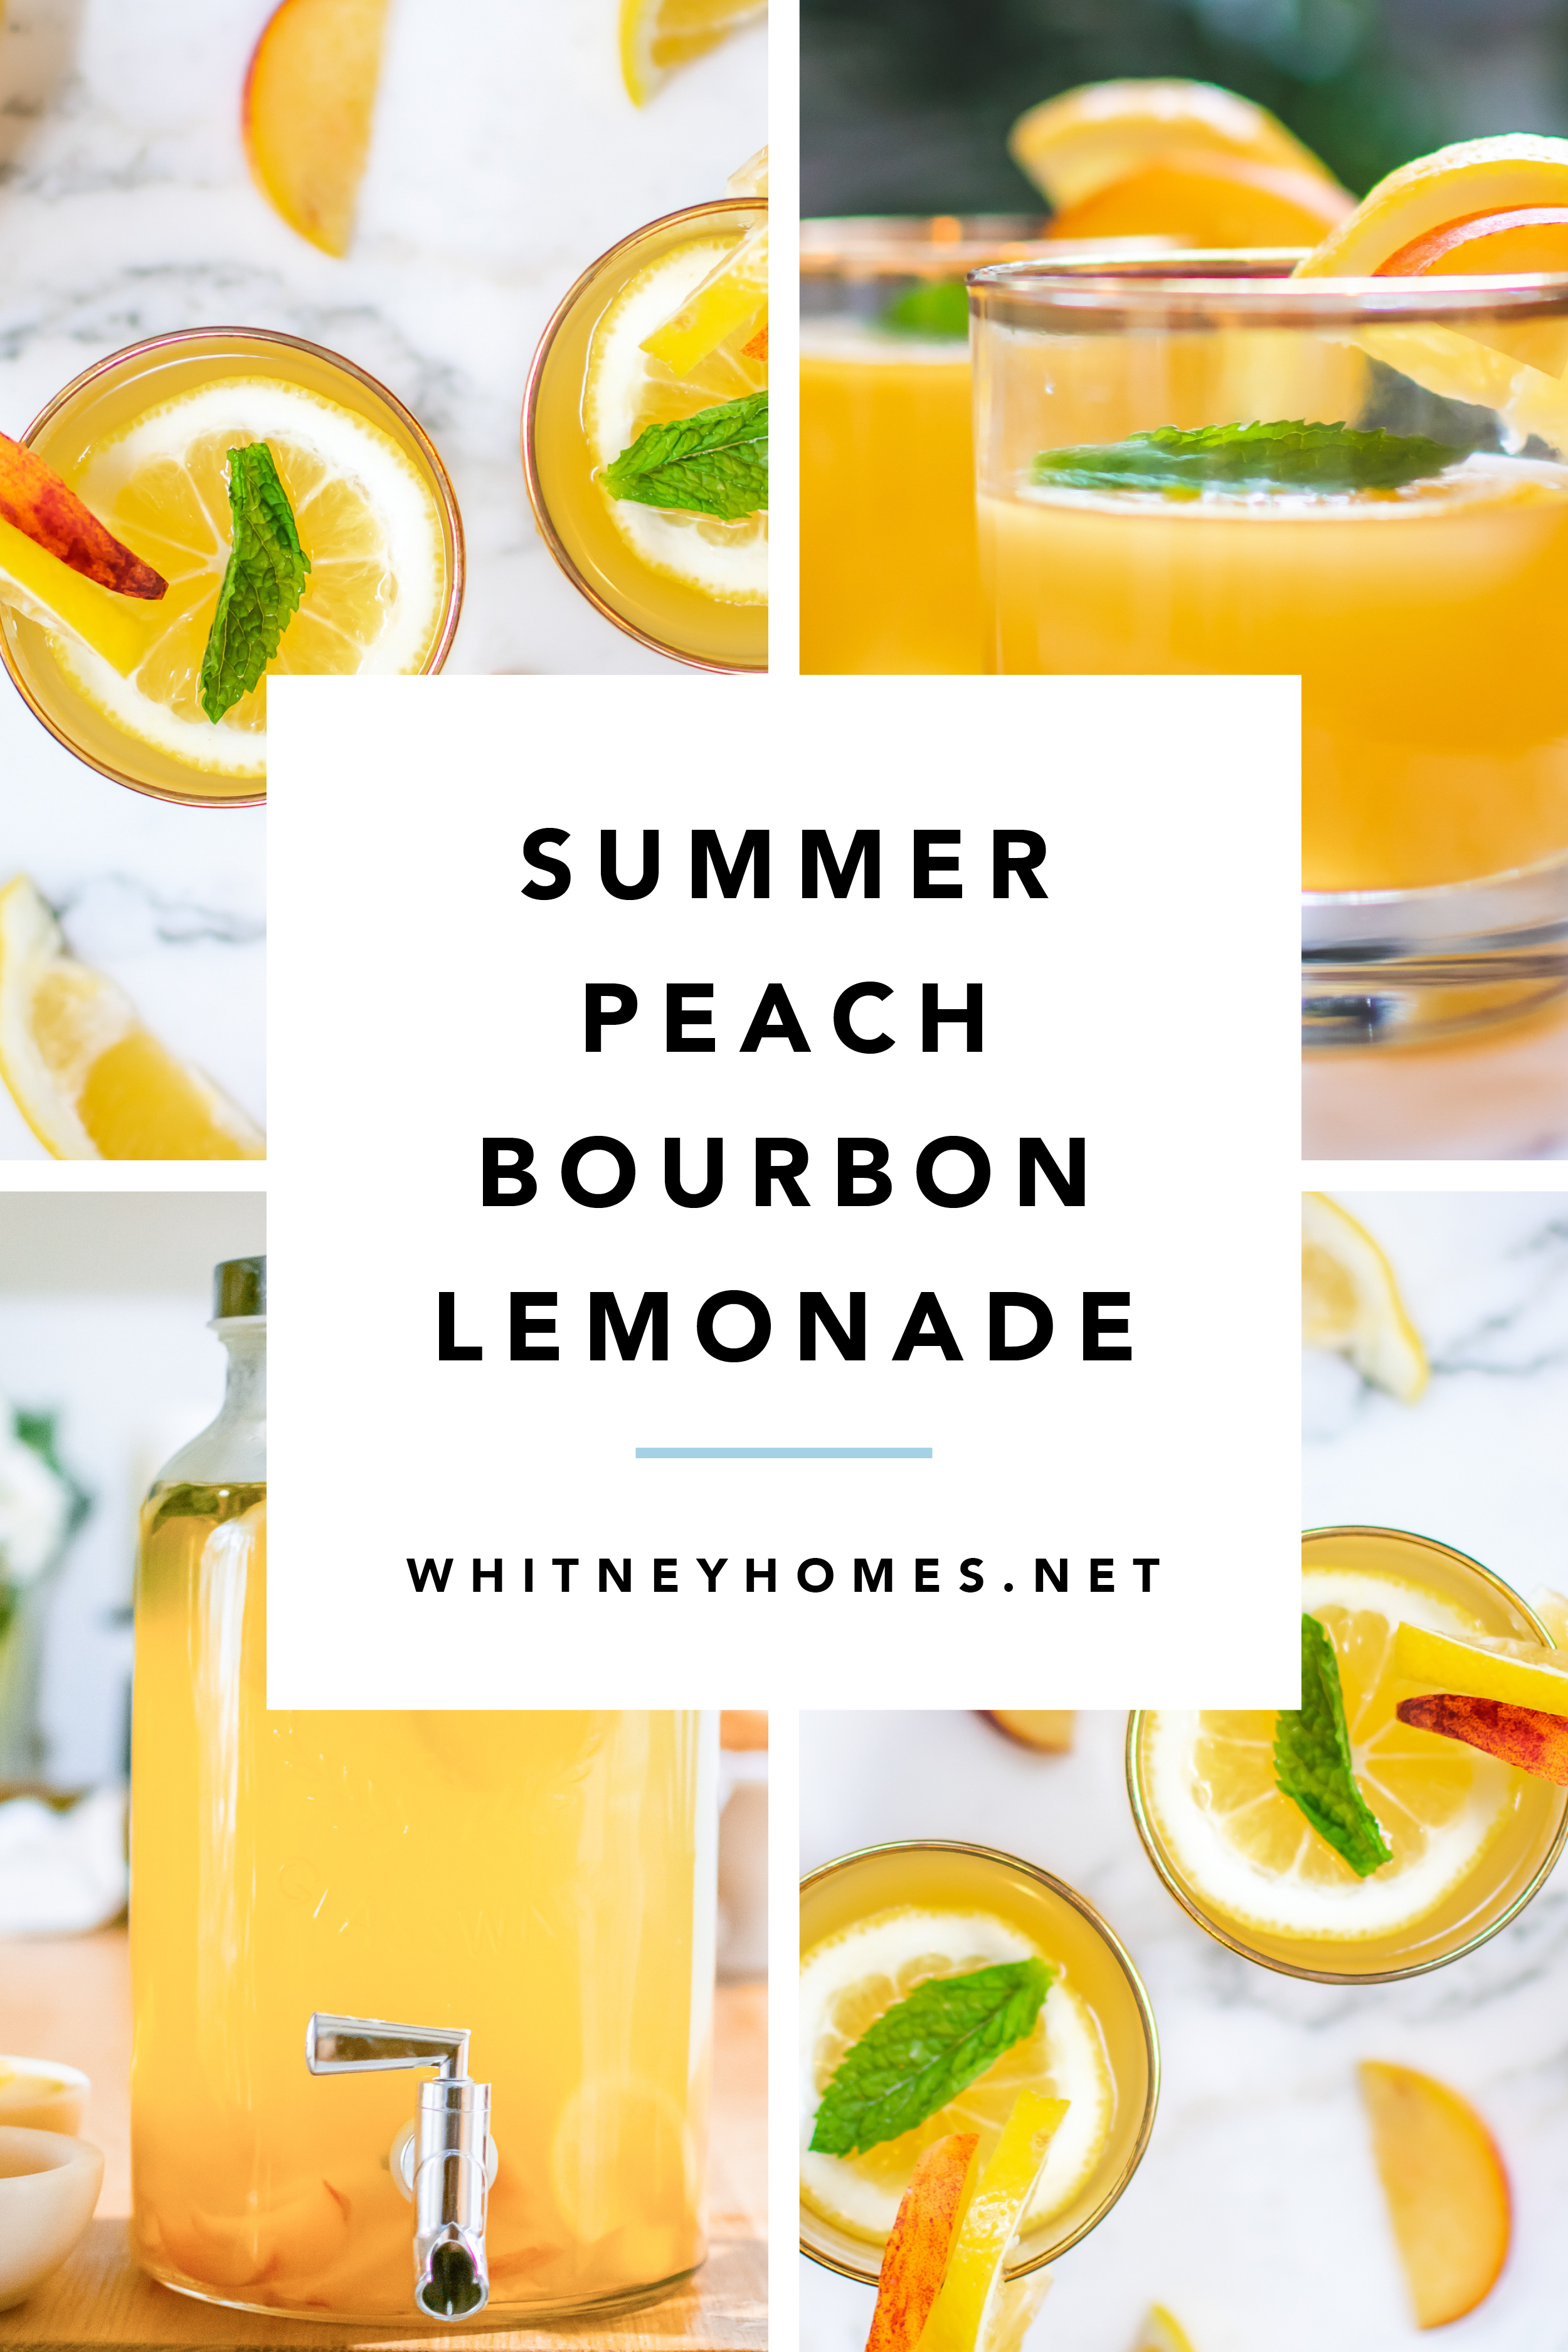 Summer Peach Bourbon Lemonade